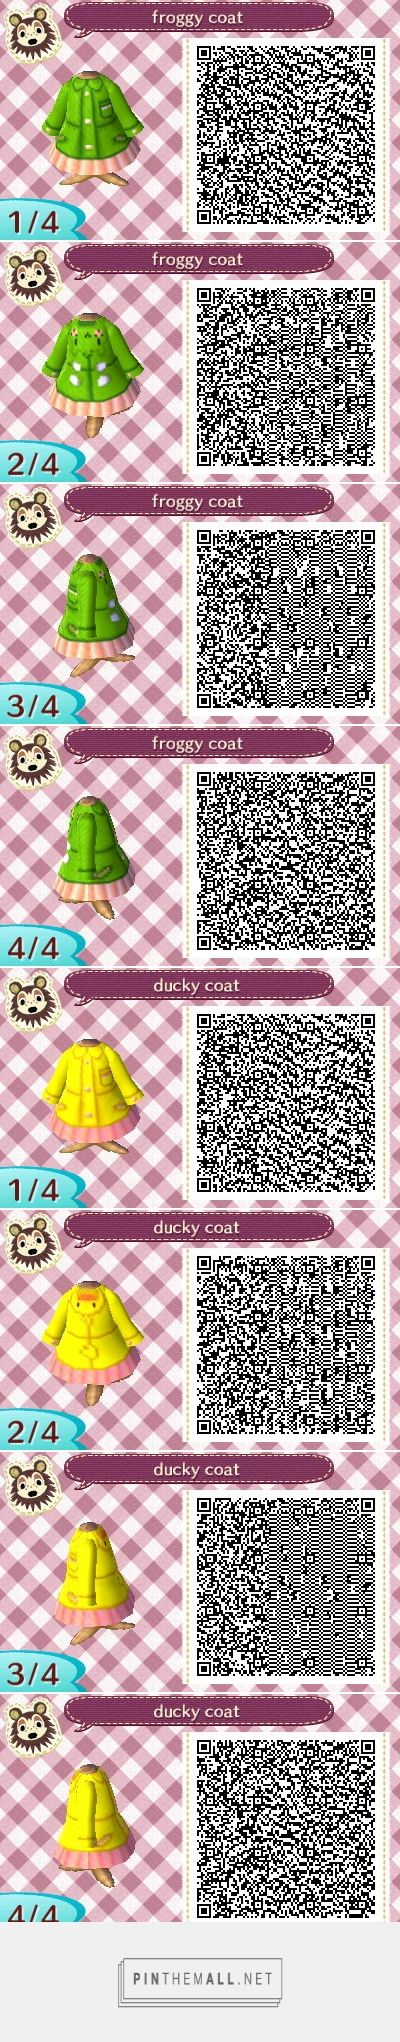 Frog And Duck Raincoat With Images Qr Codes Animal Crossing